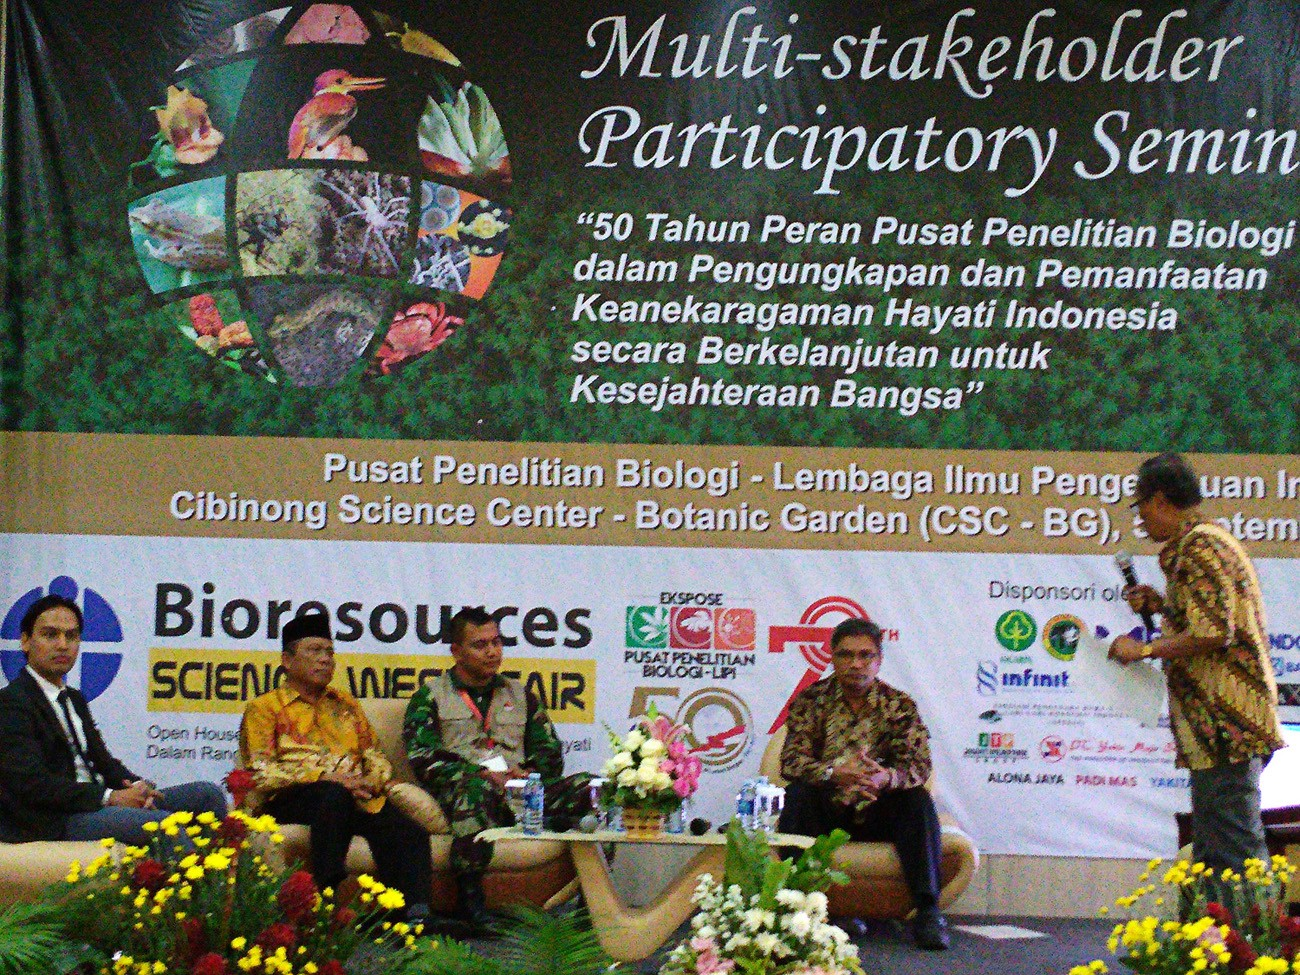 LIPI, Kopassus team up for biodiversity exploration